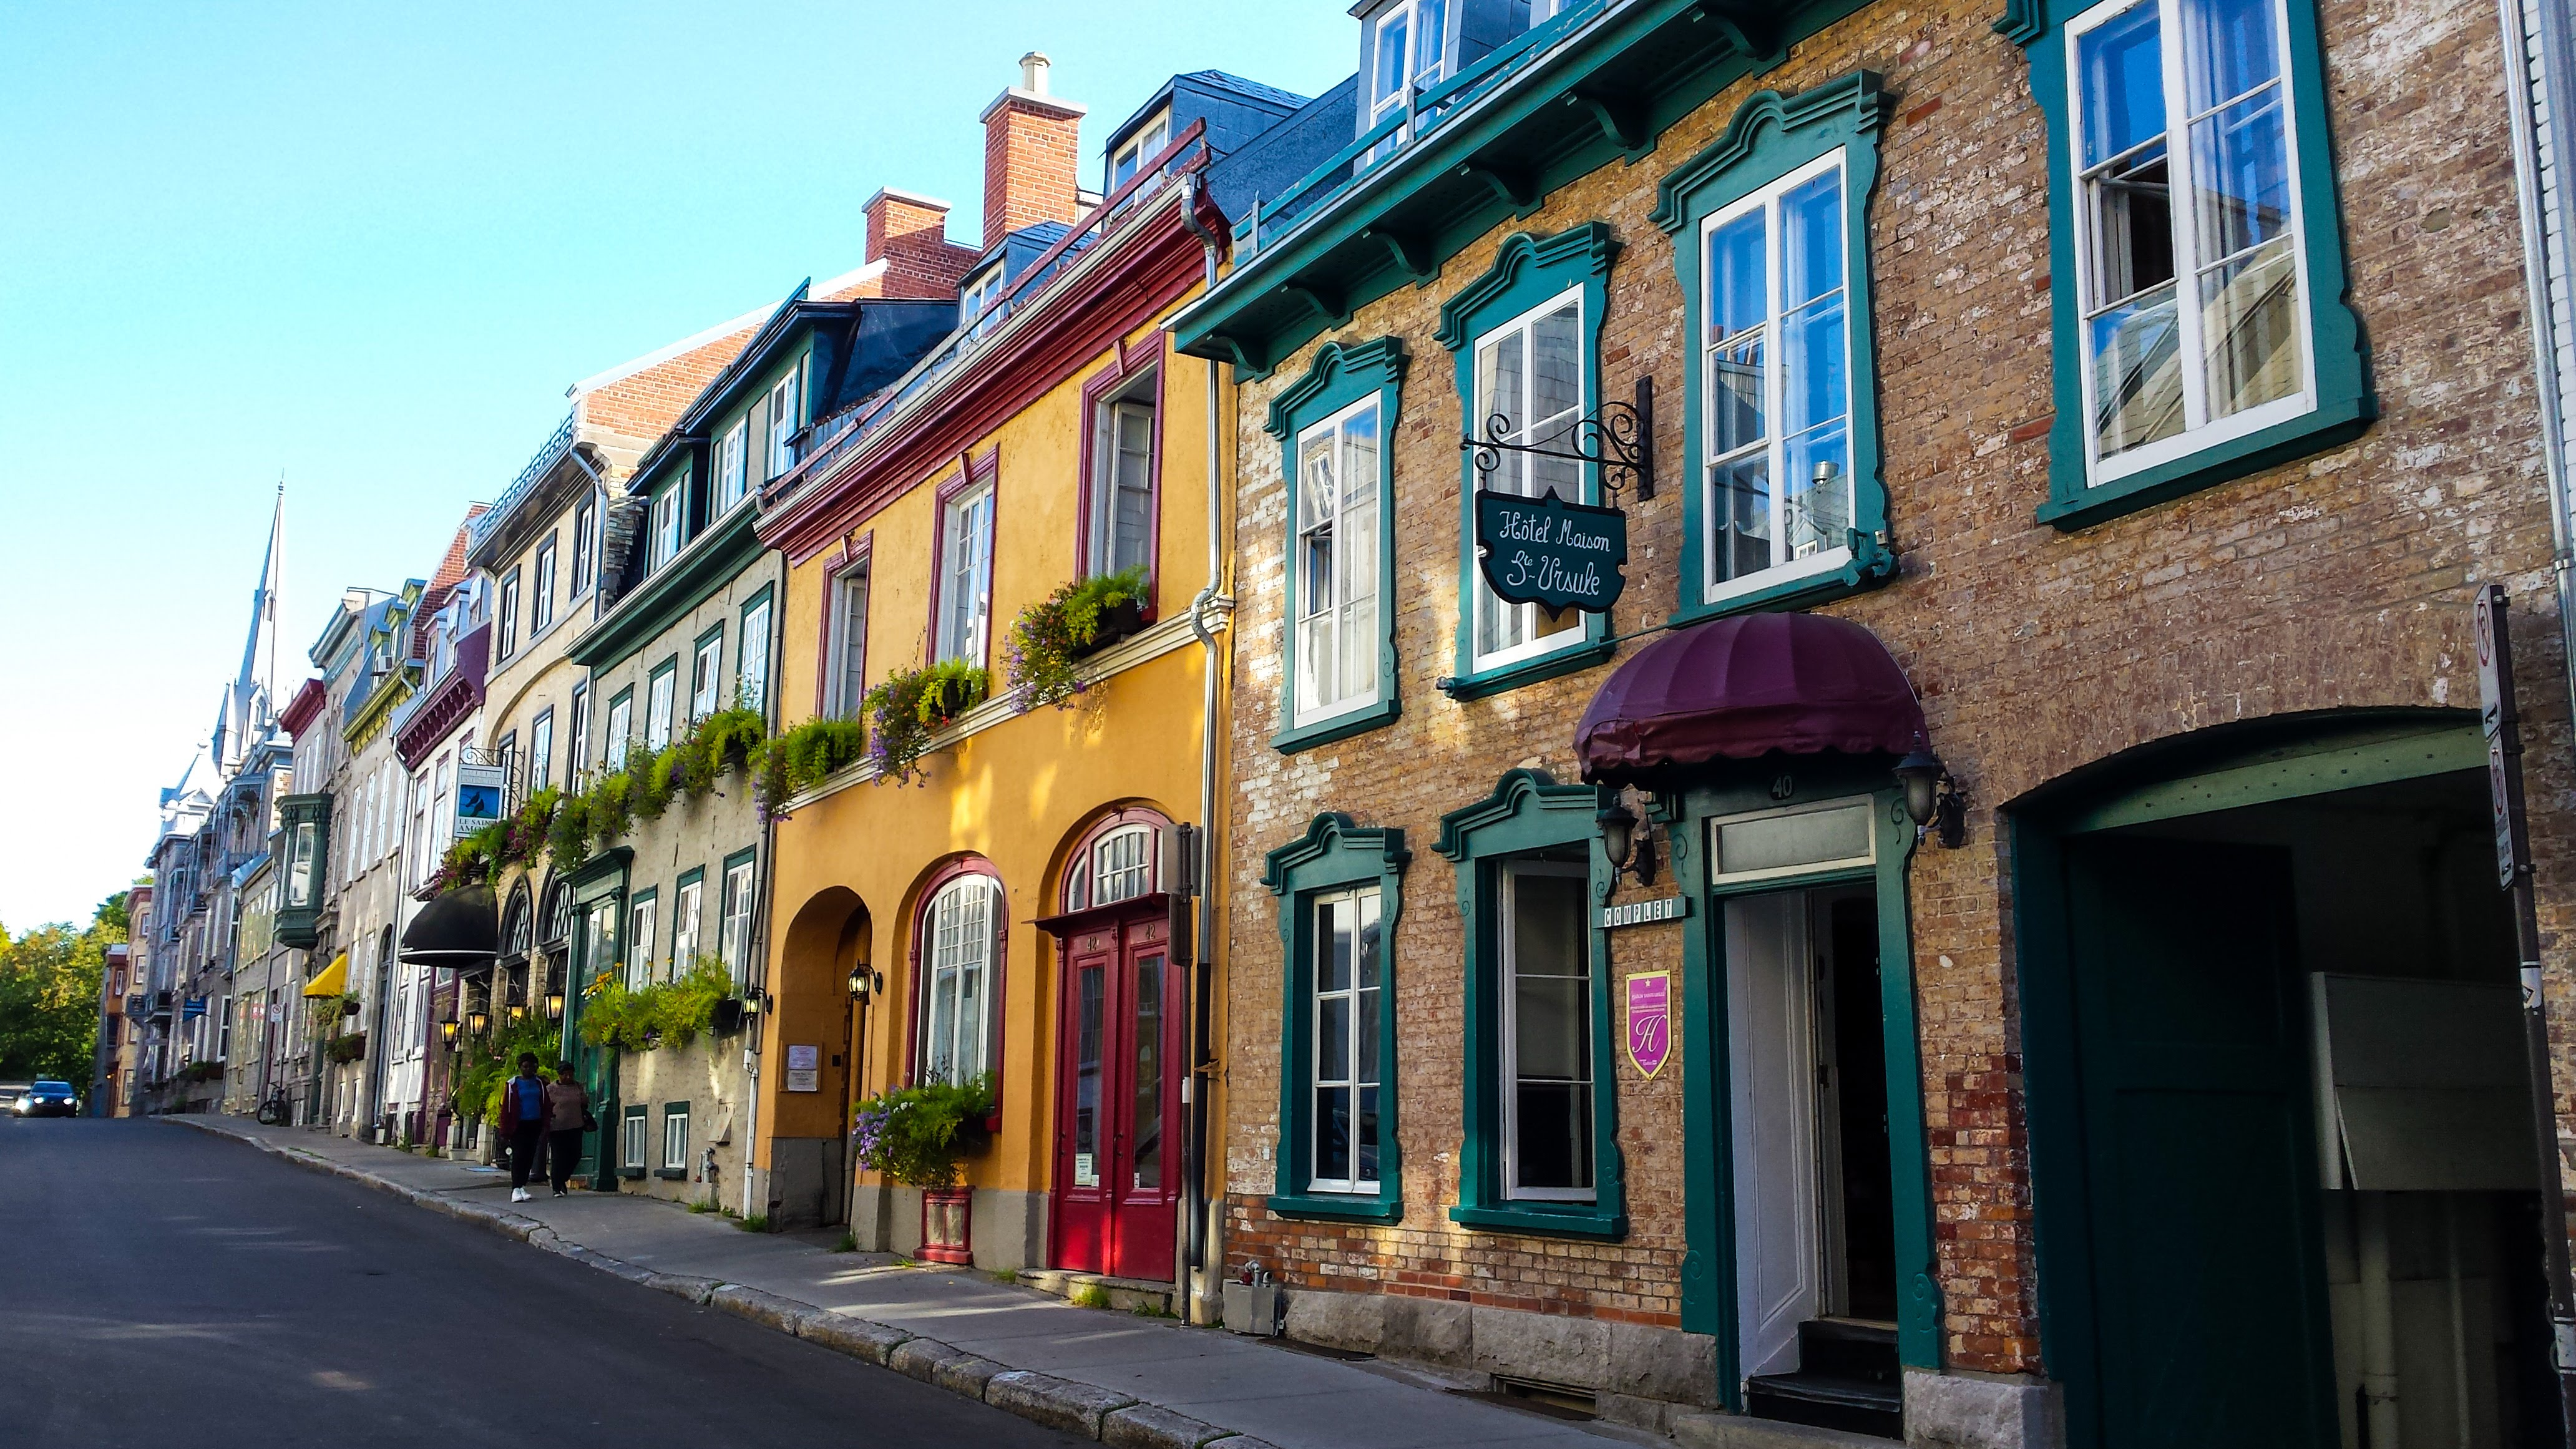 Canada Quebec City travel guide travel tips city guide things to do itinerary sightseeing highlights old Quebec